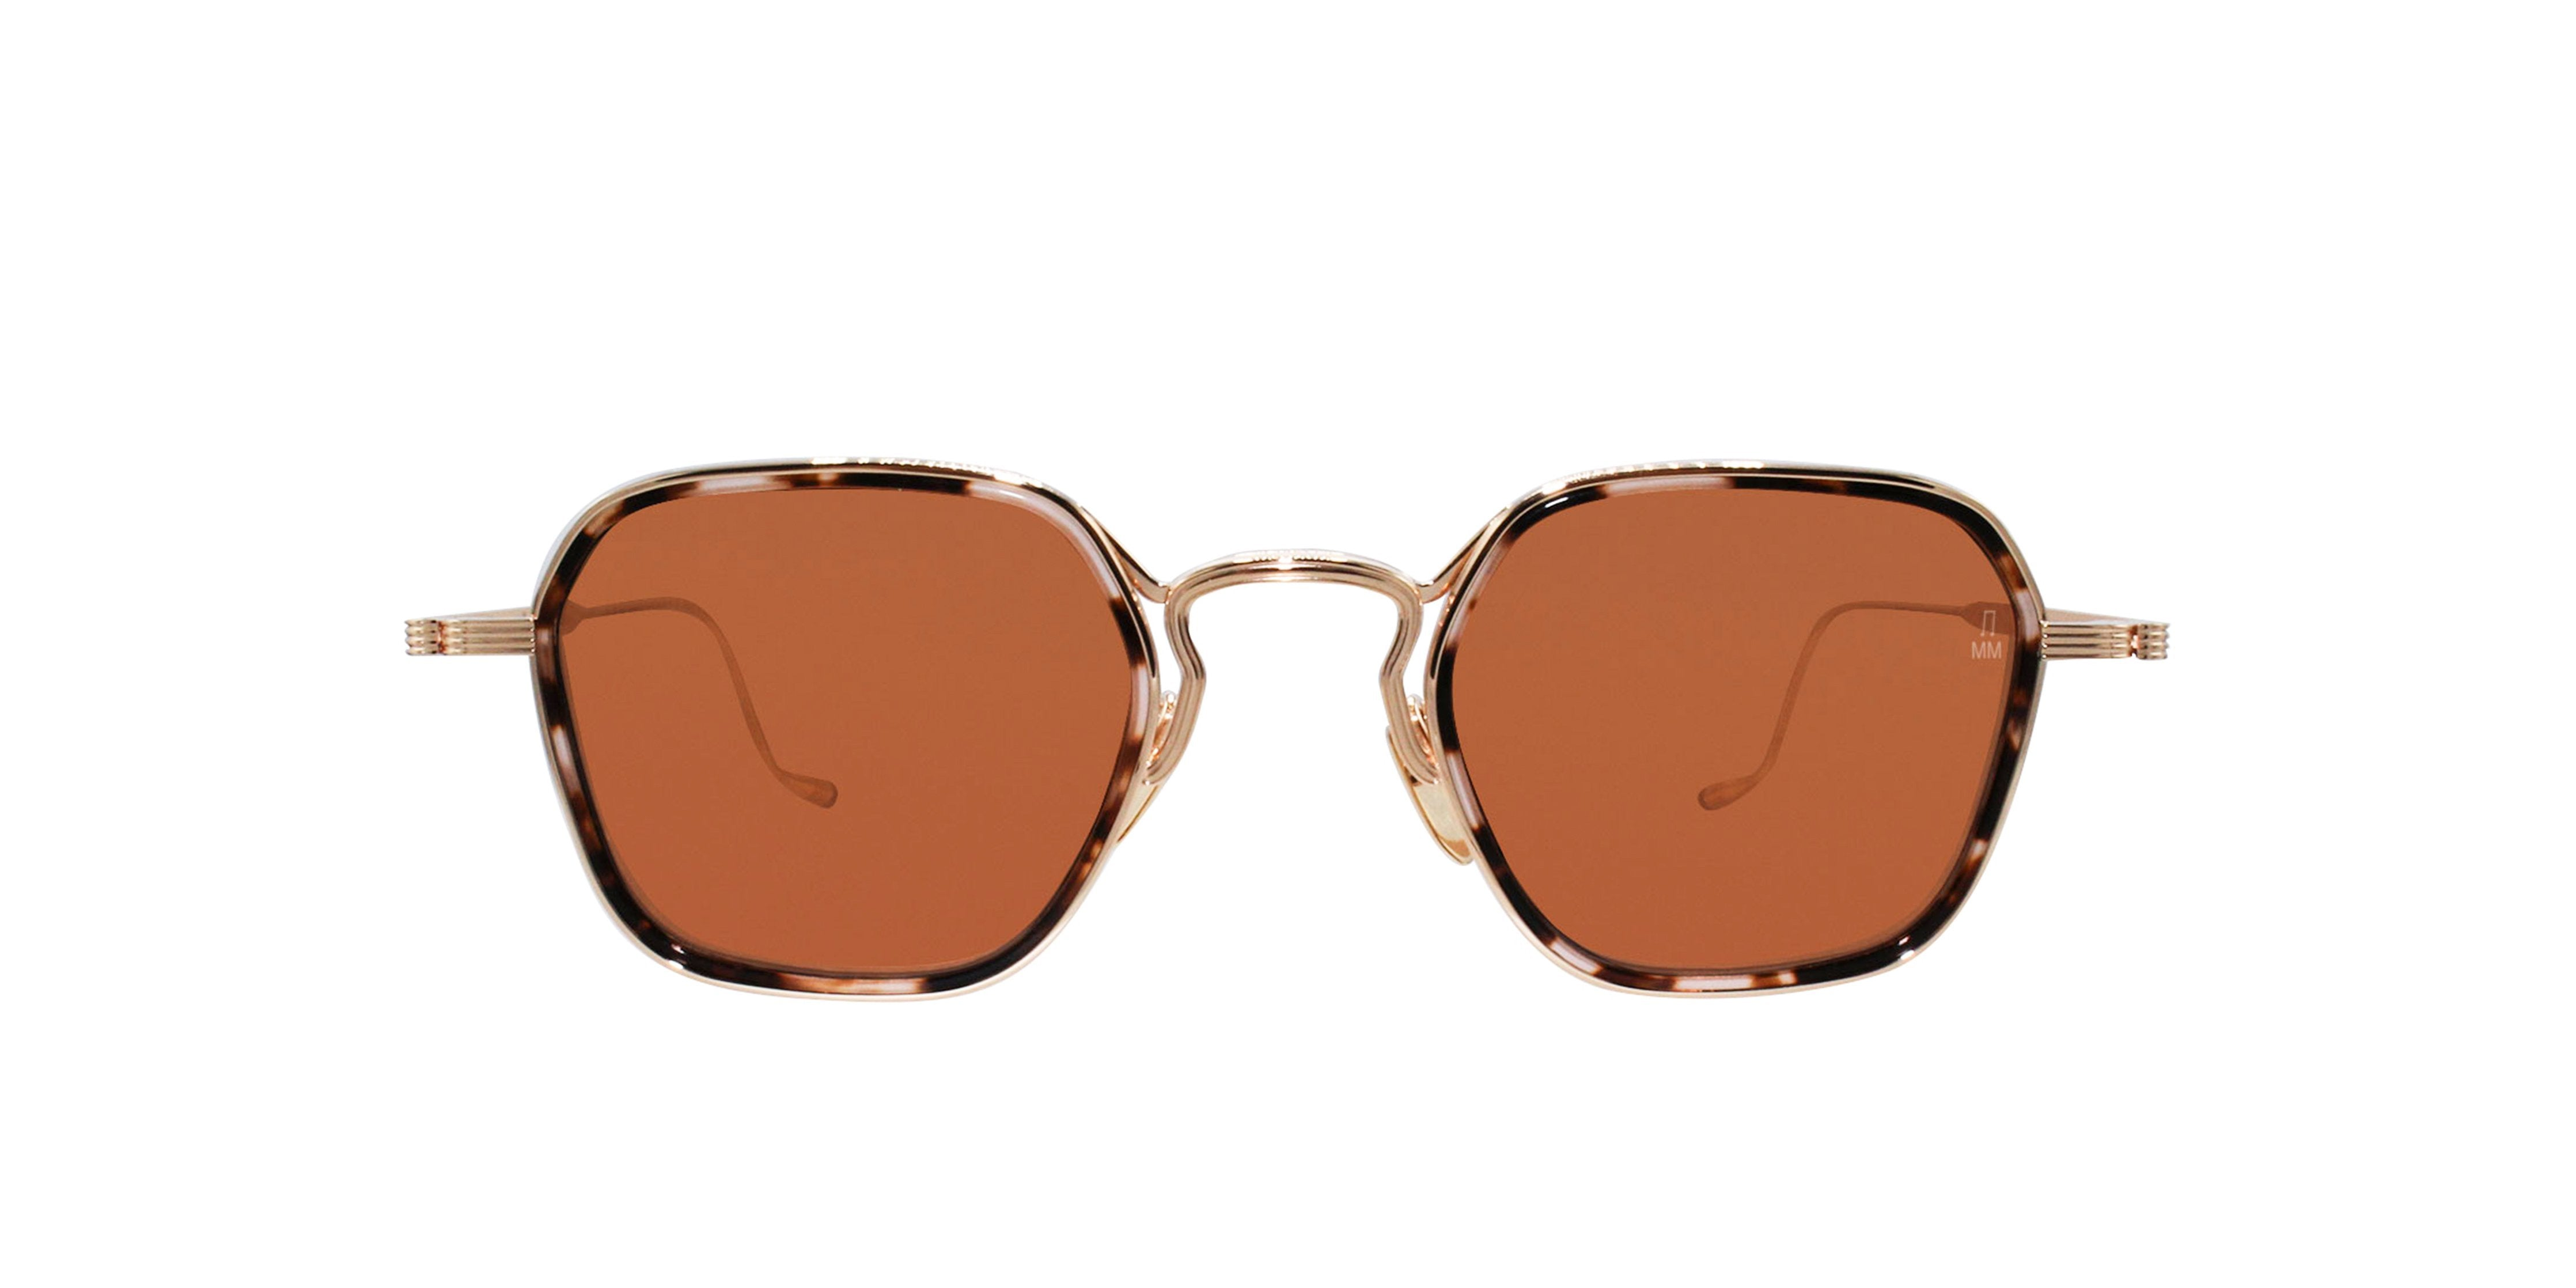 Jacques Marie Mage - Wyatt Gold/Pink Rectangular Unisex Sunglasses - 47mm-Sunglasses-Designer Eyes